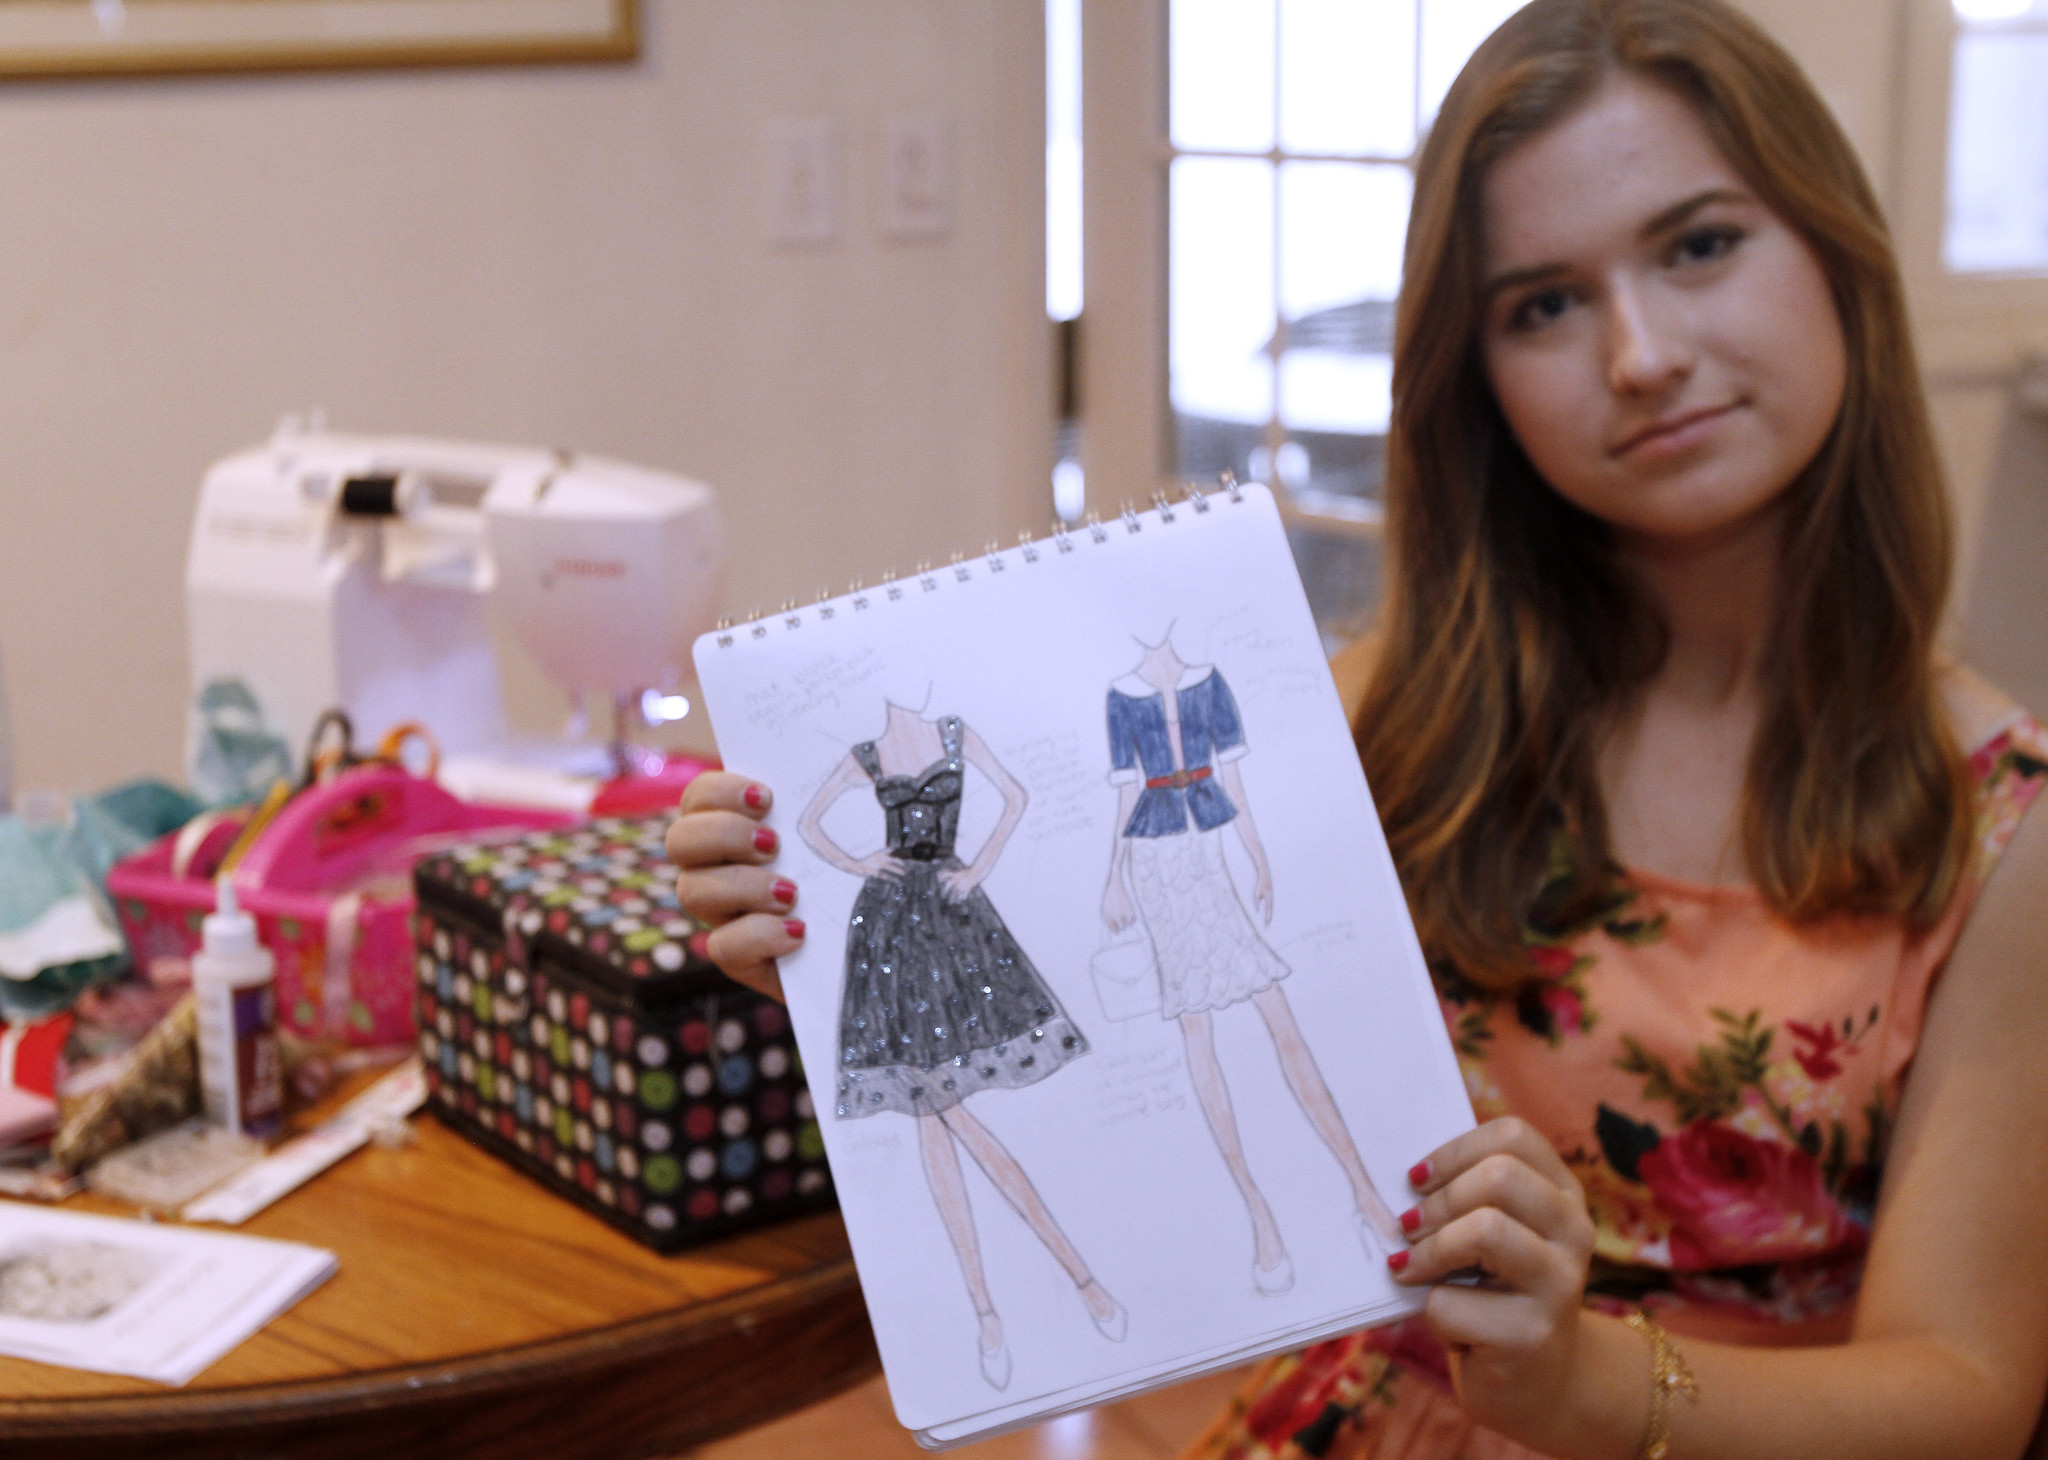 Project Runway for teens? THIS we want to watch!